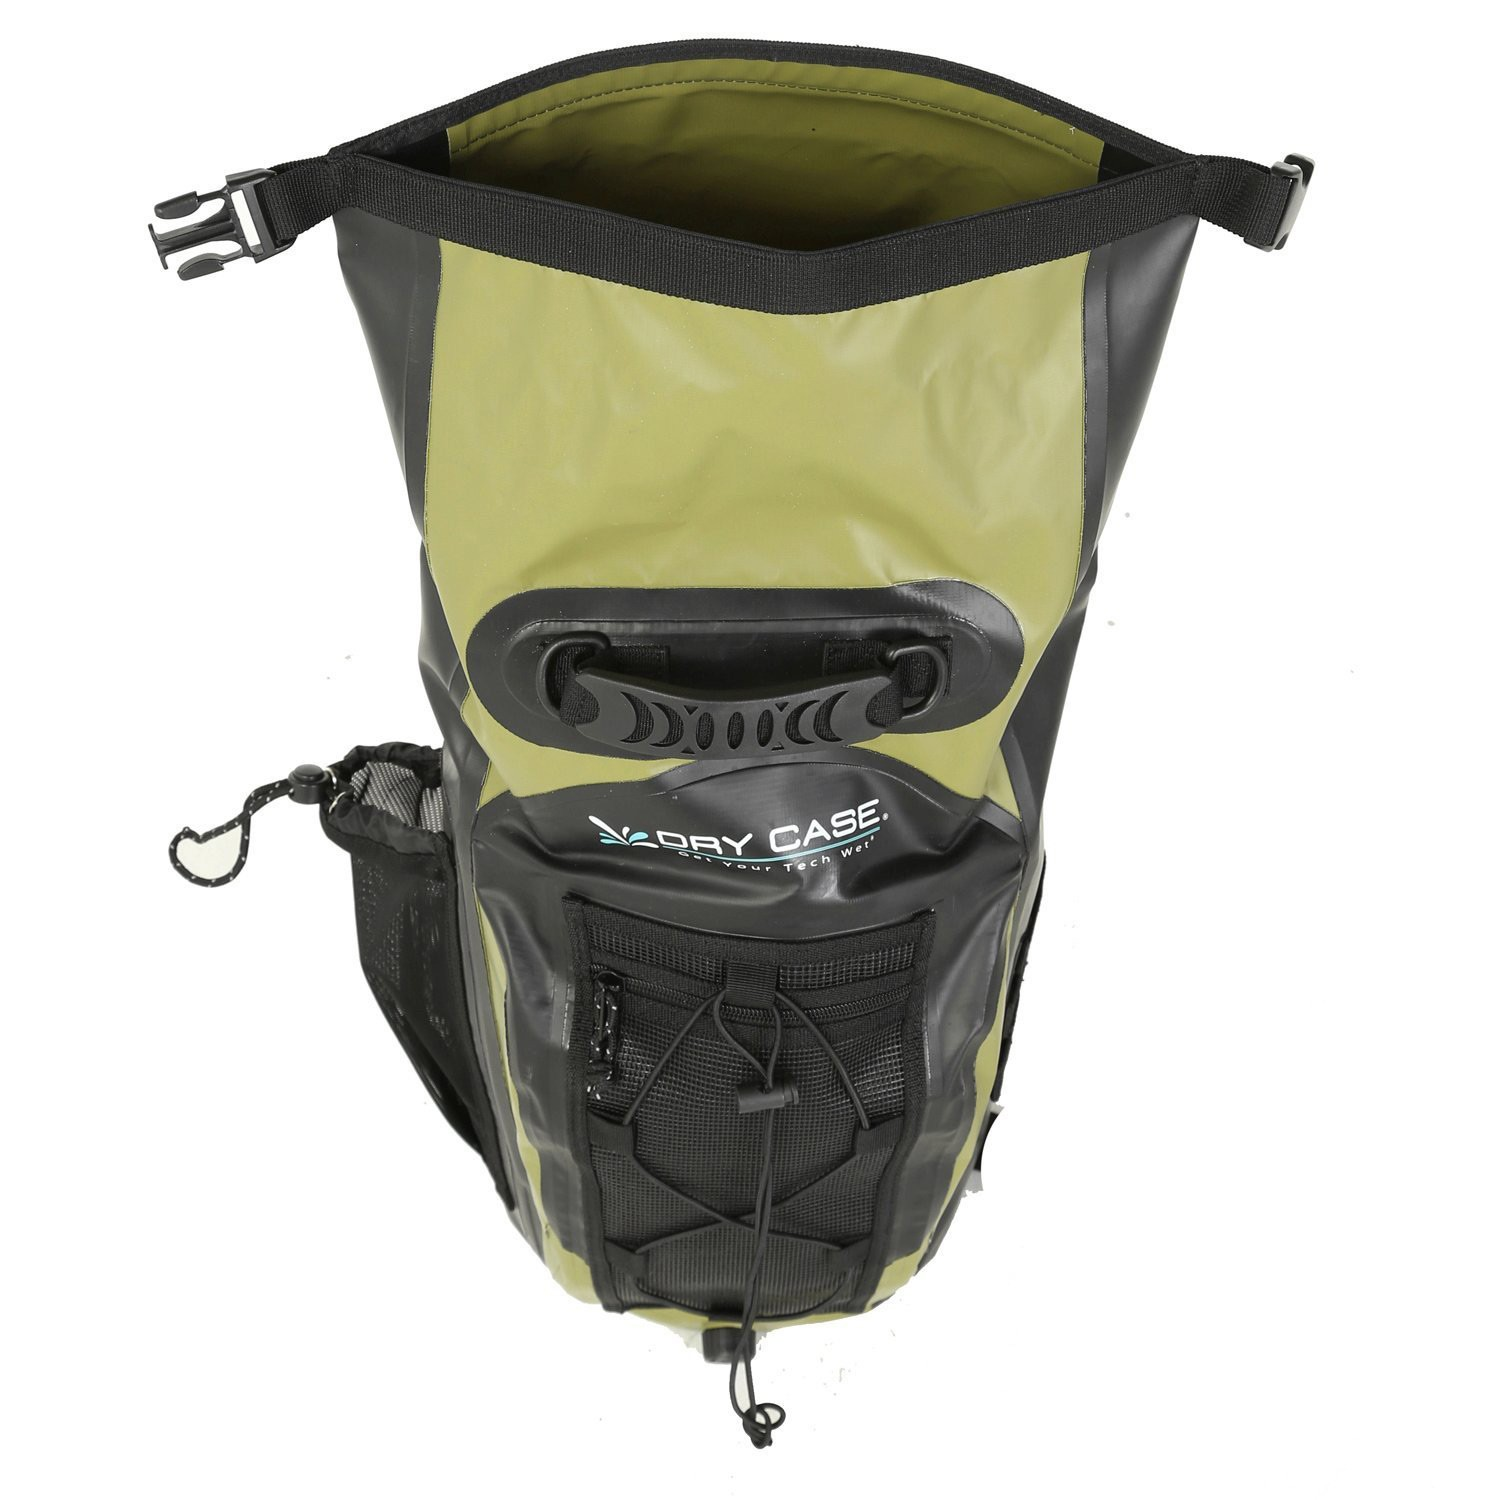 Drycase Basin Waterproof Backpack at Divers Direct